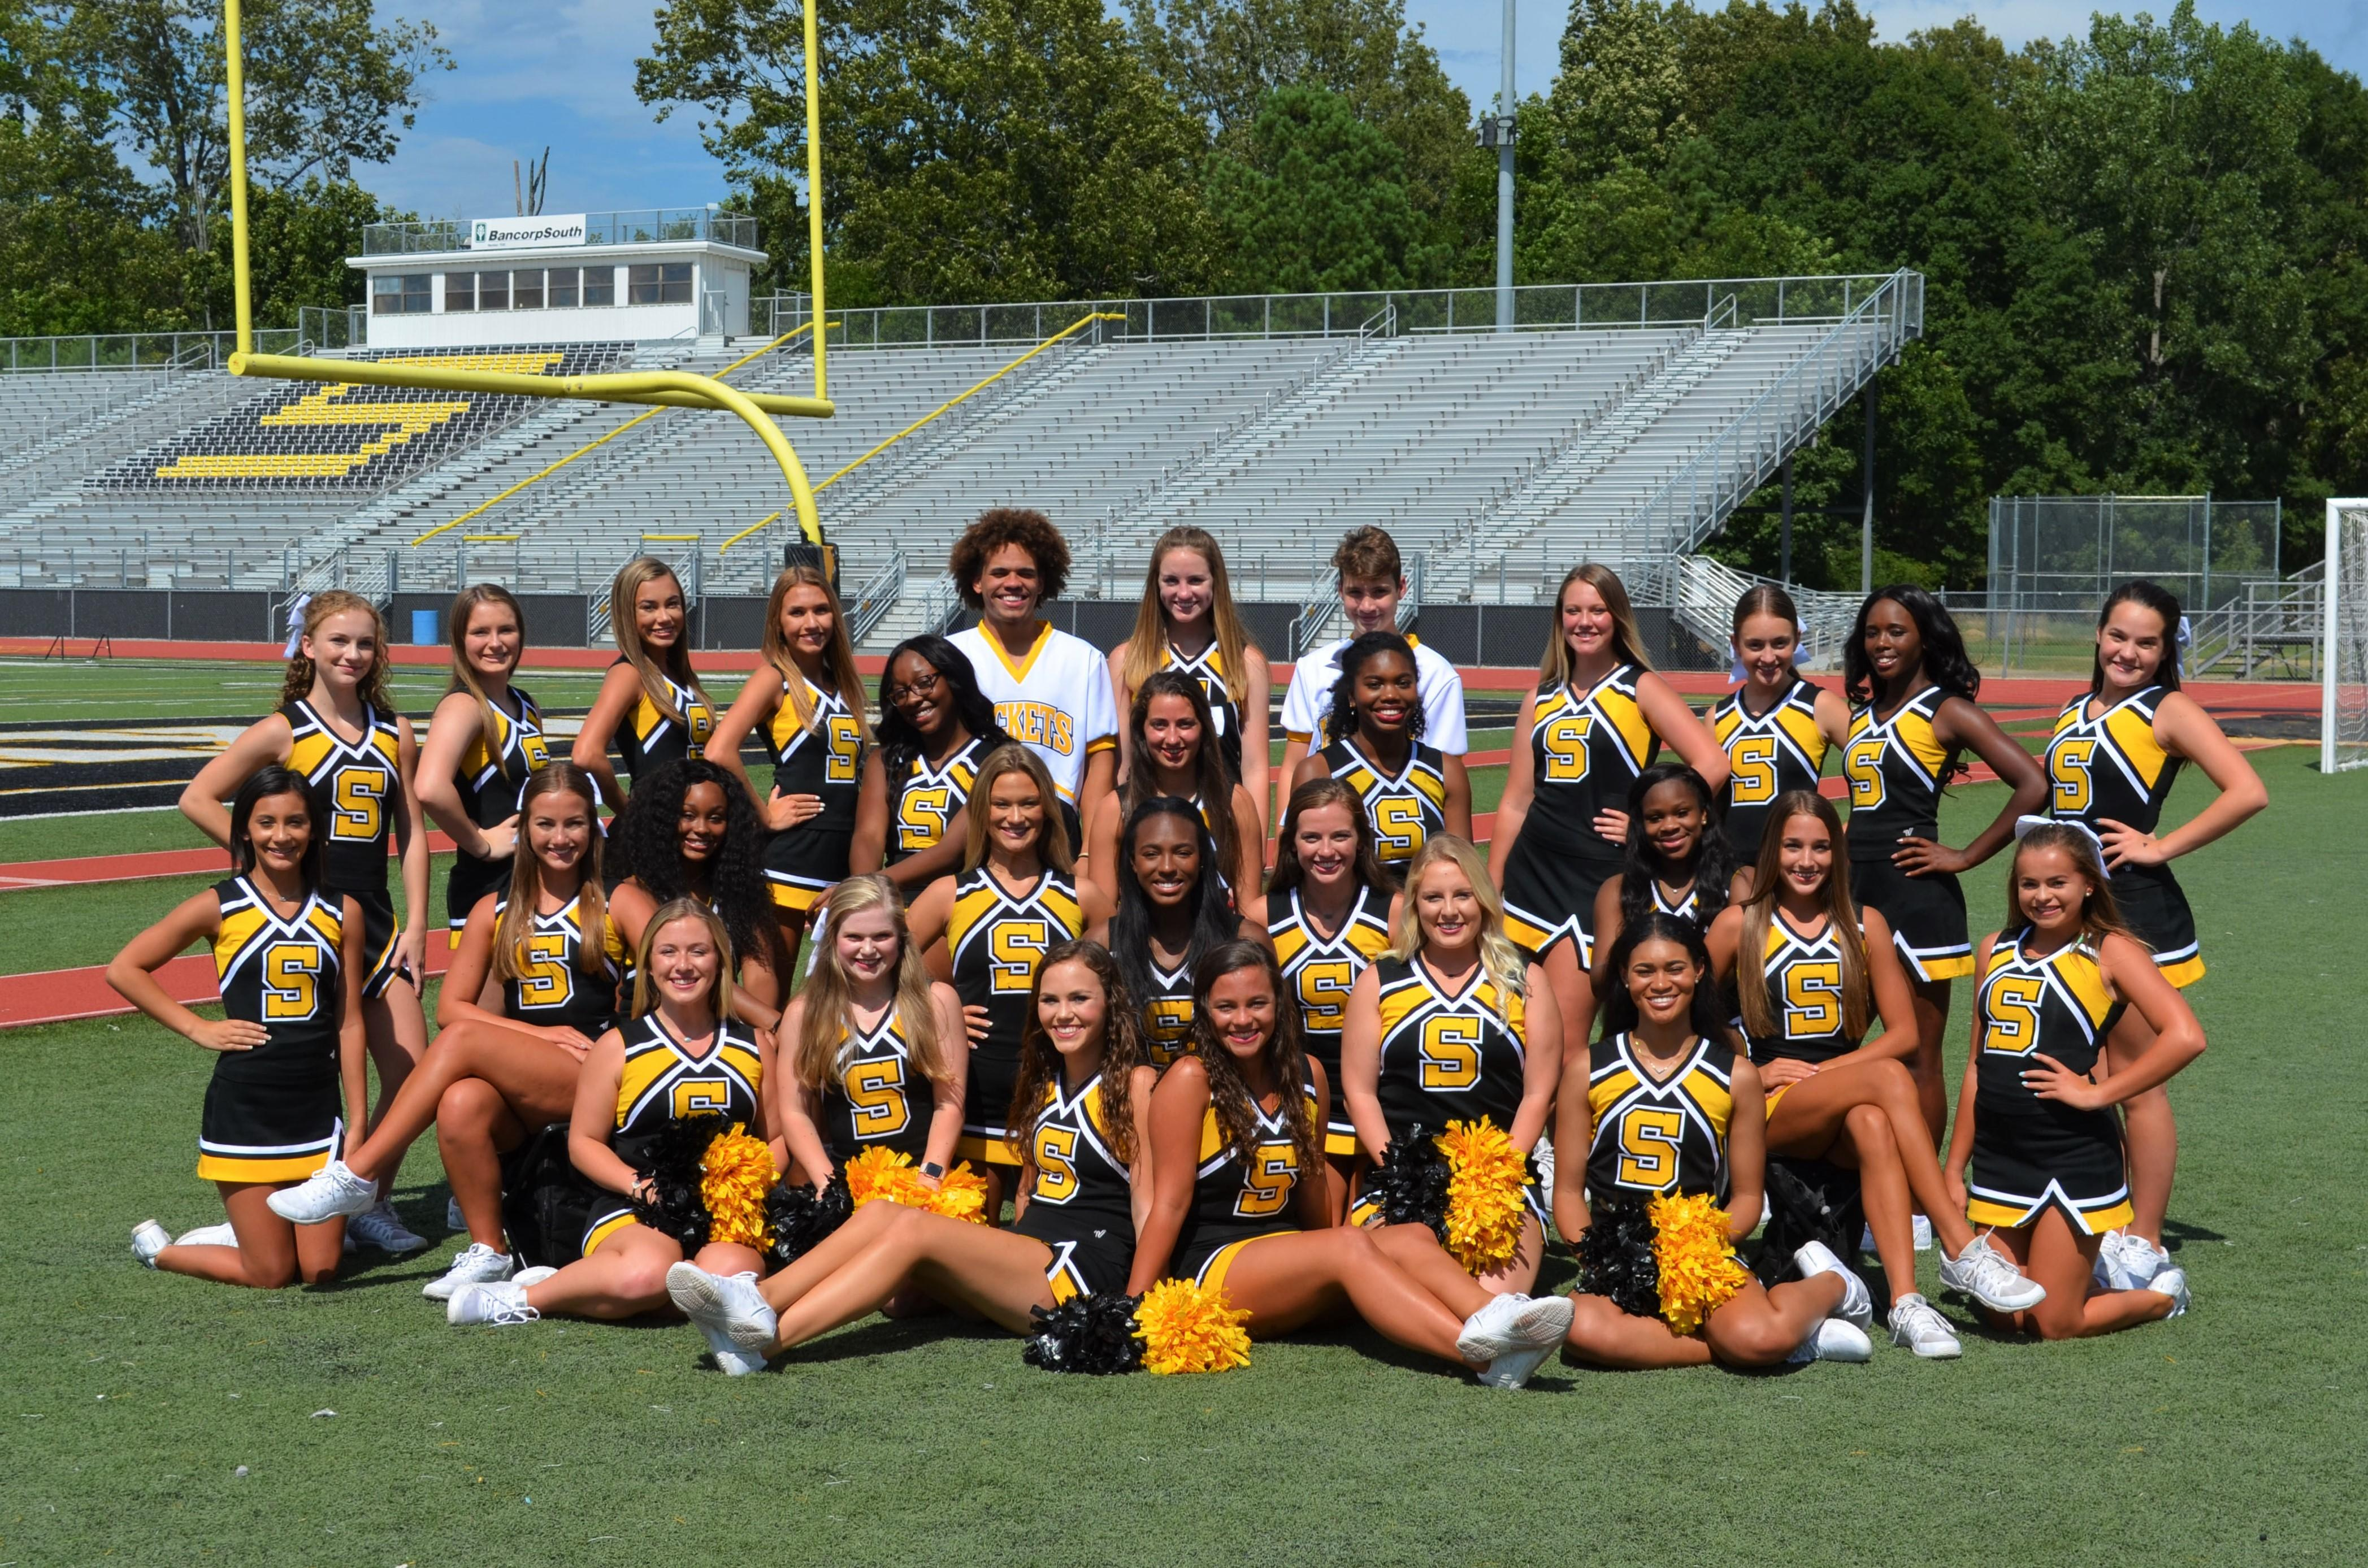 Starkville High School 2018 Cheer Squad